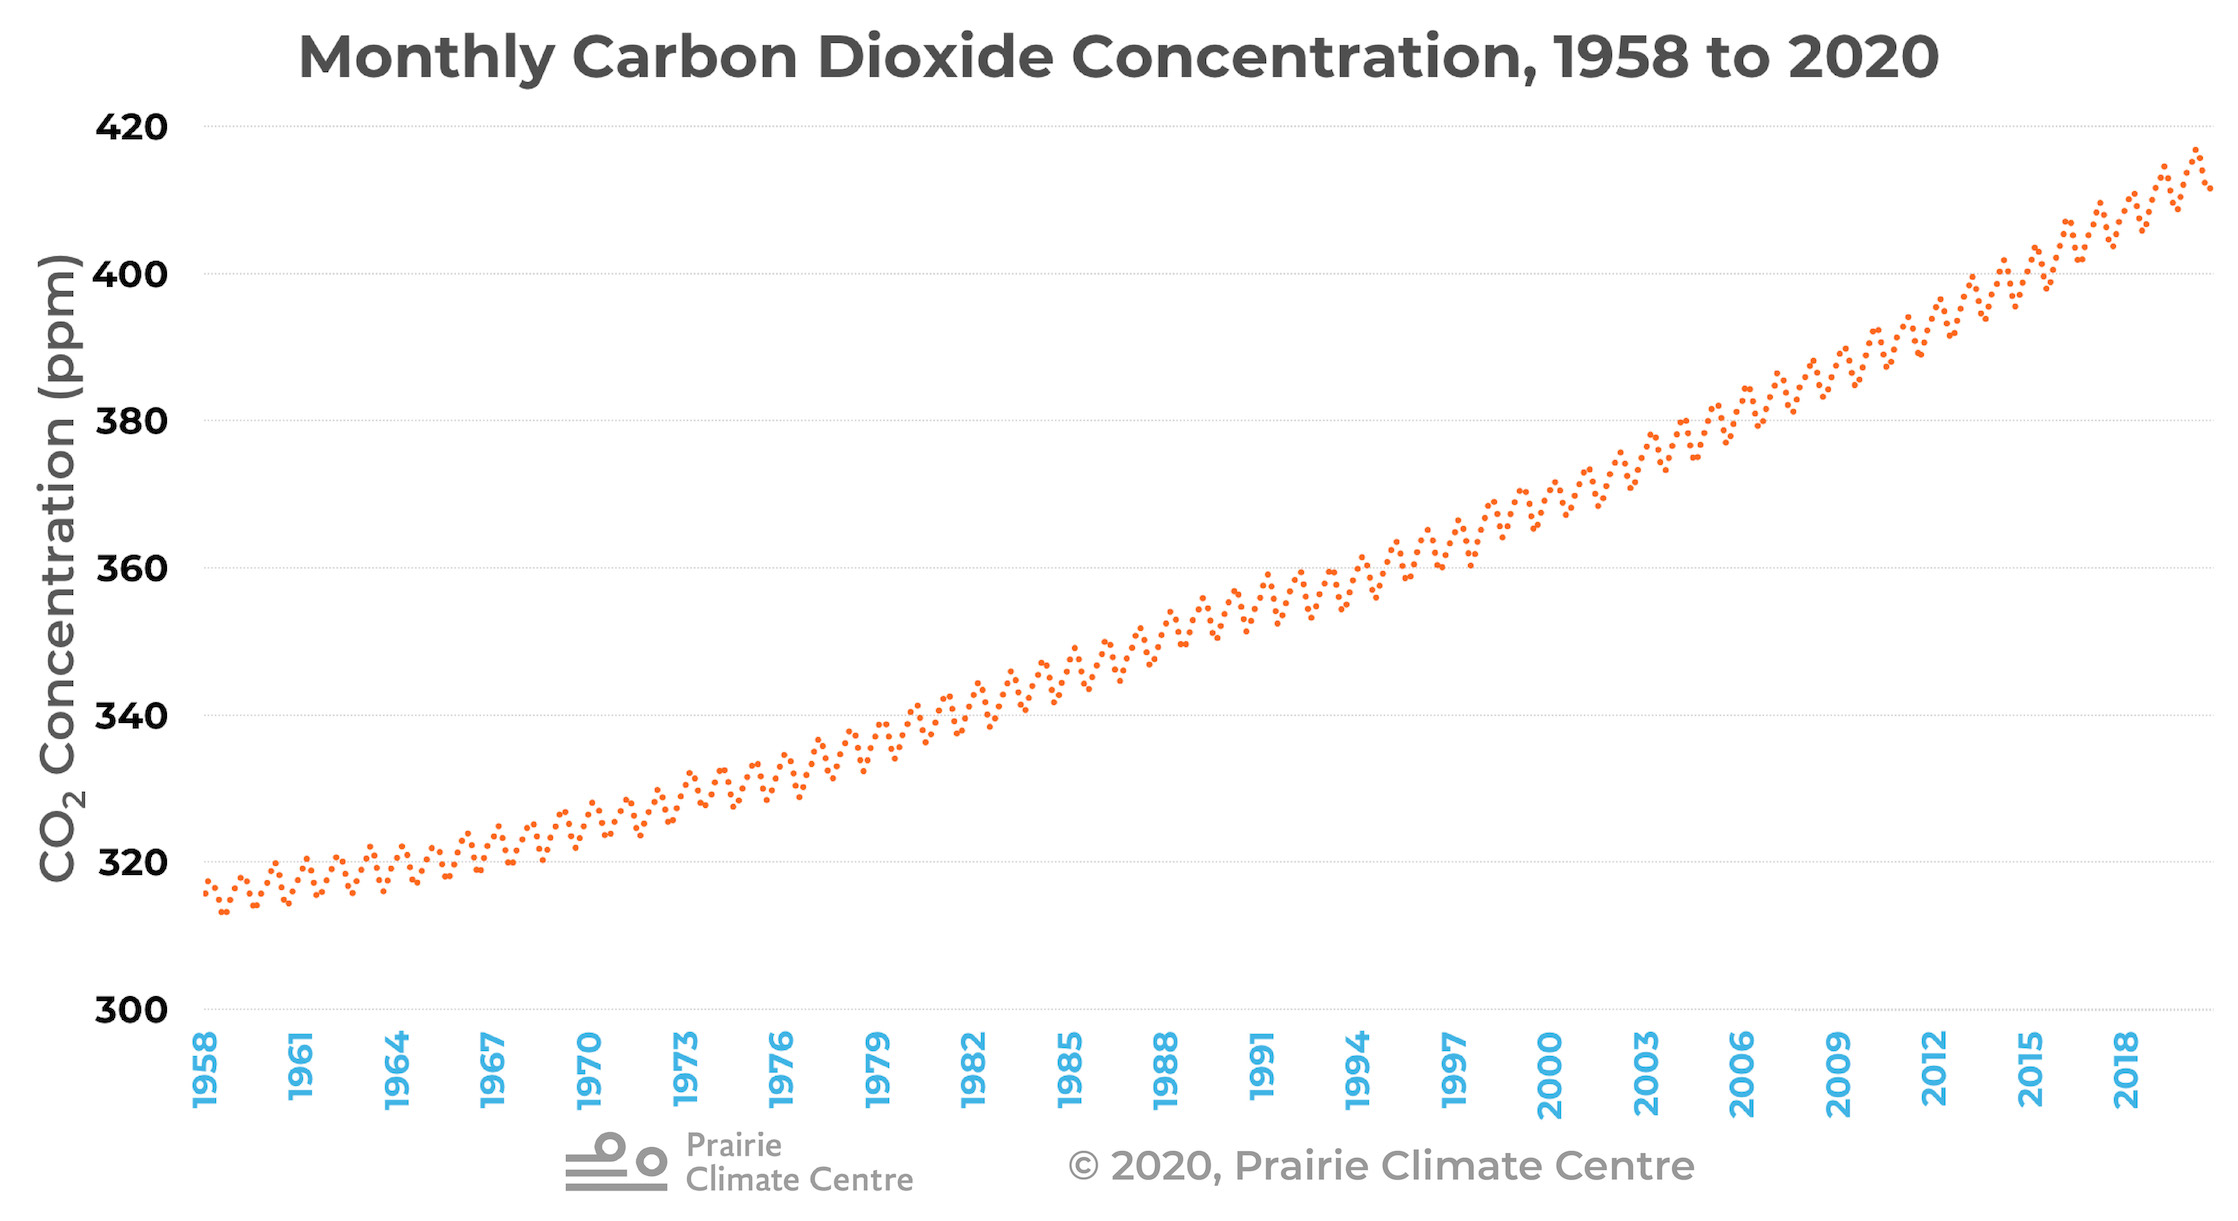 Monthly CO2 Concentration, 1958-2020